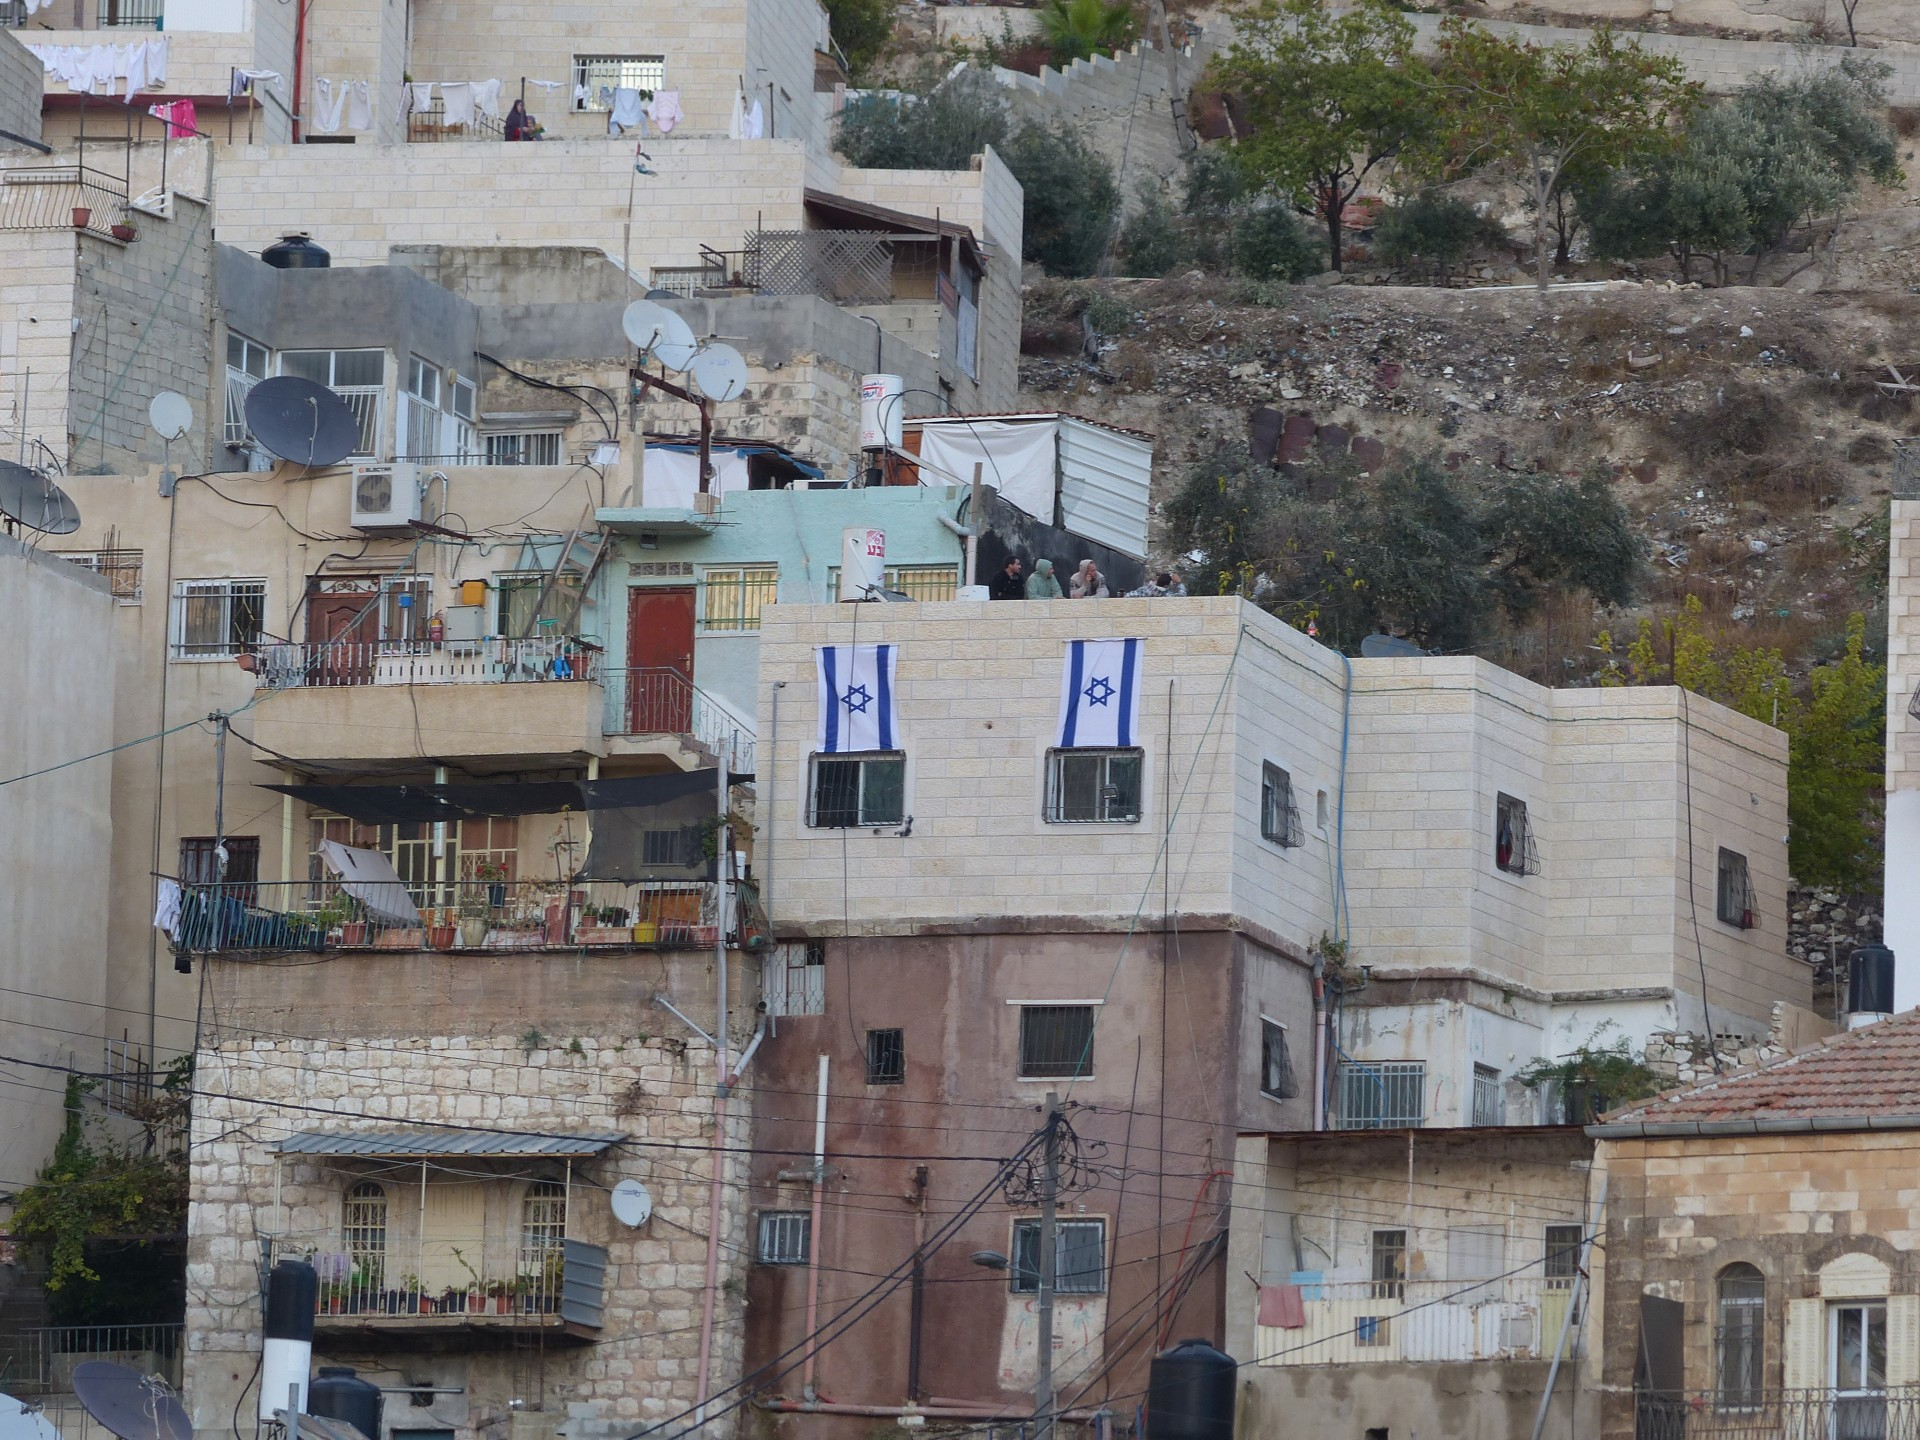 Humanitarian impact of settlements in Palestinian